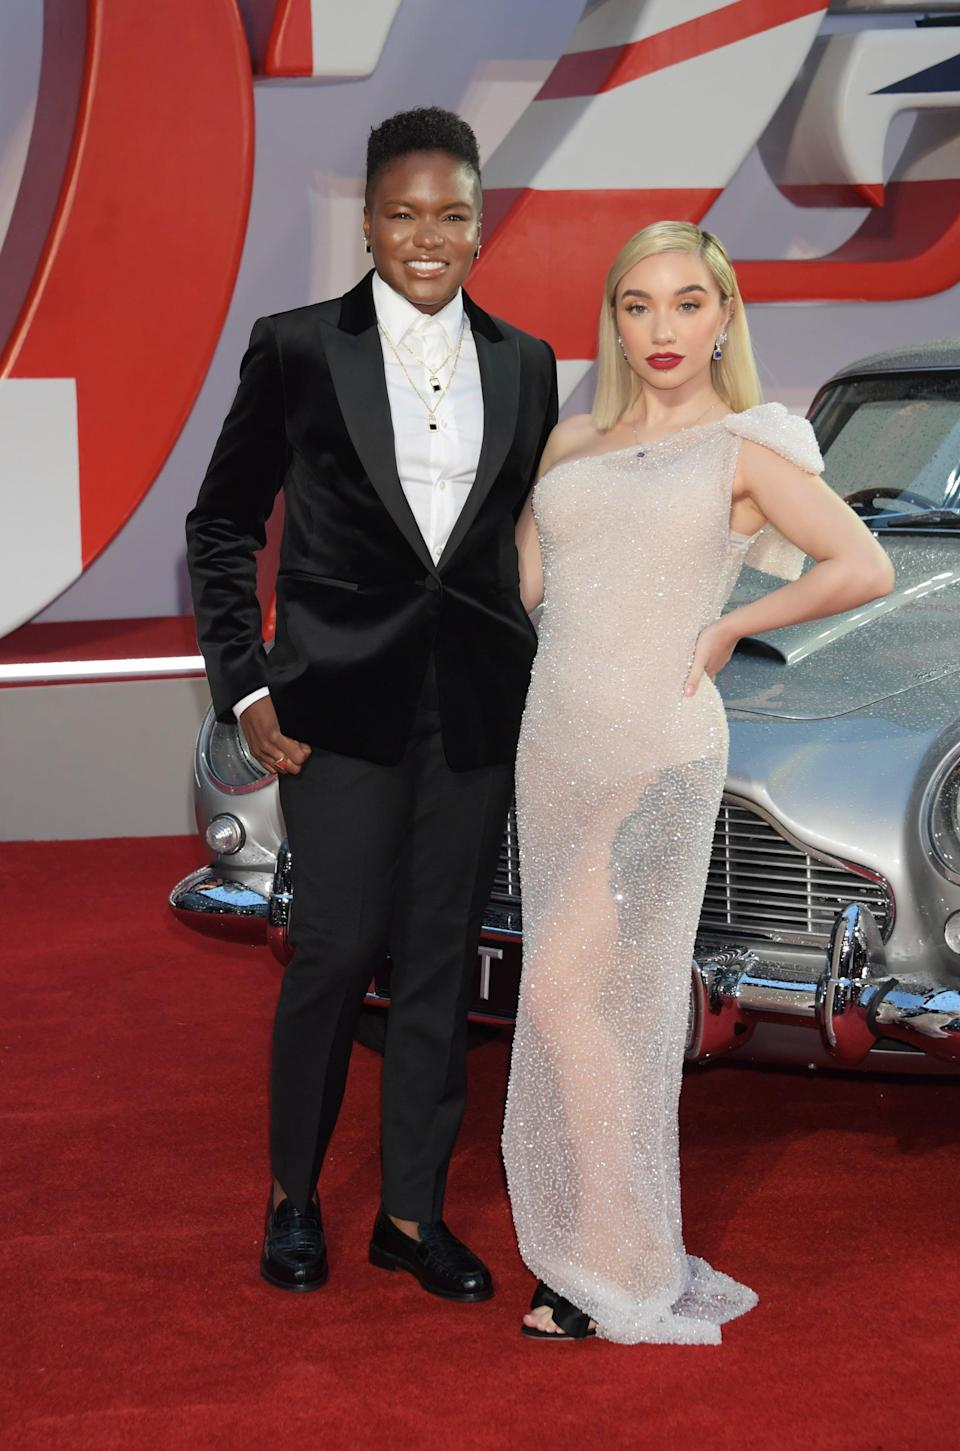 <p>Adams wore a black suit with a velvet jacket, and Baig wore a shimmery, off-the-shoulder gown. </p>